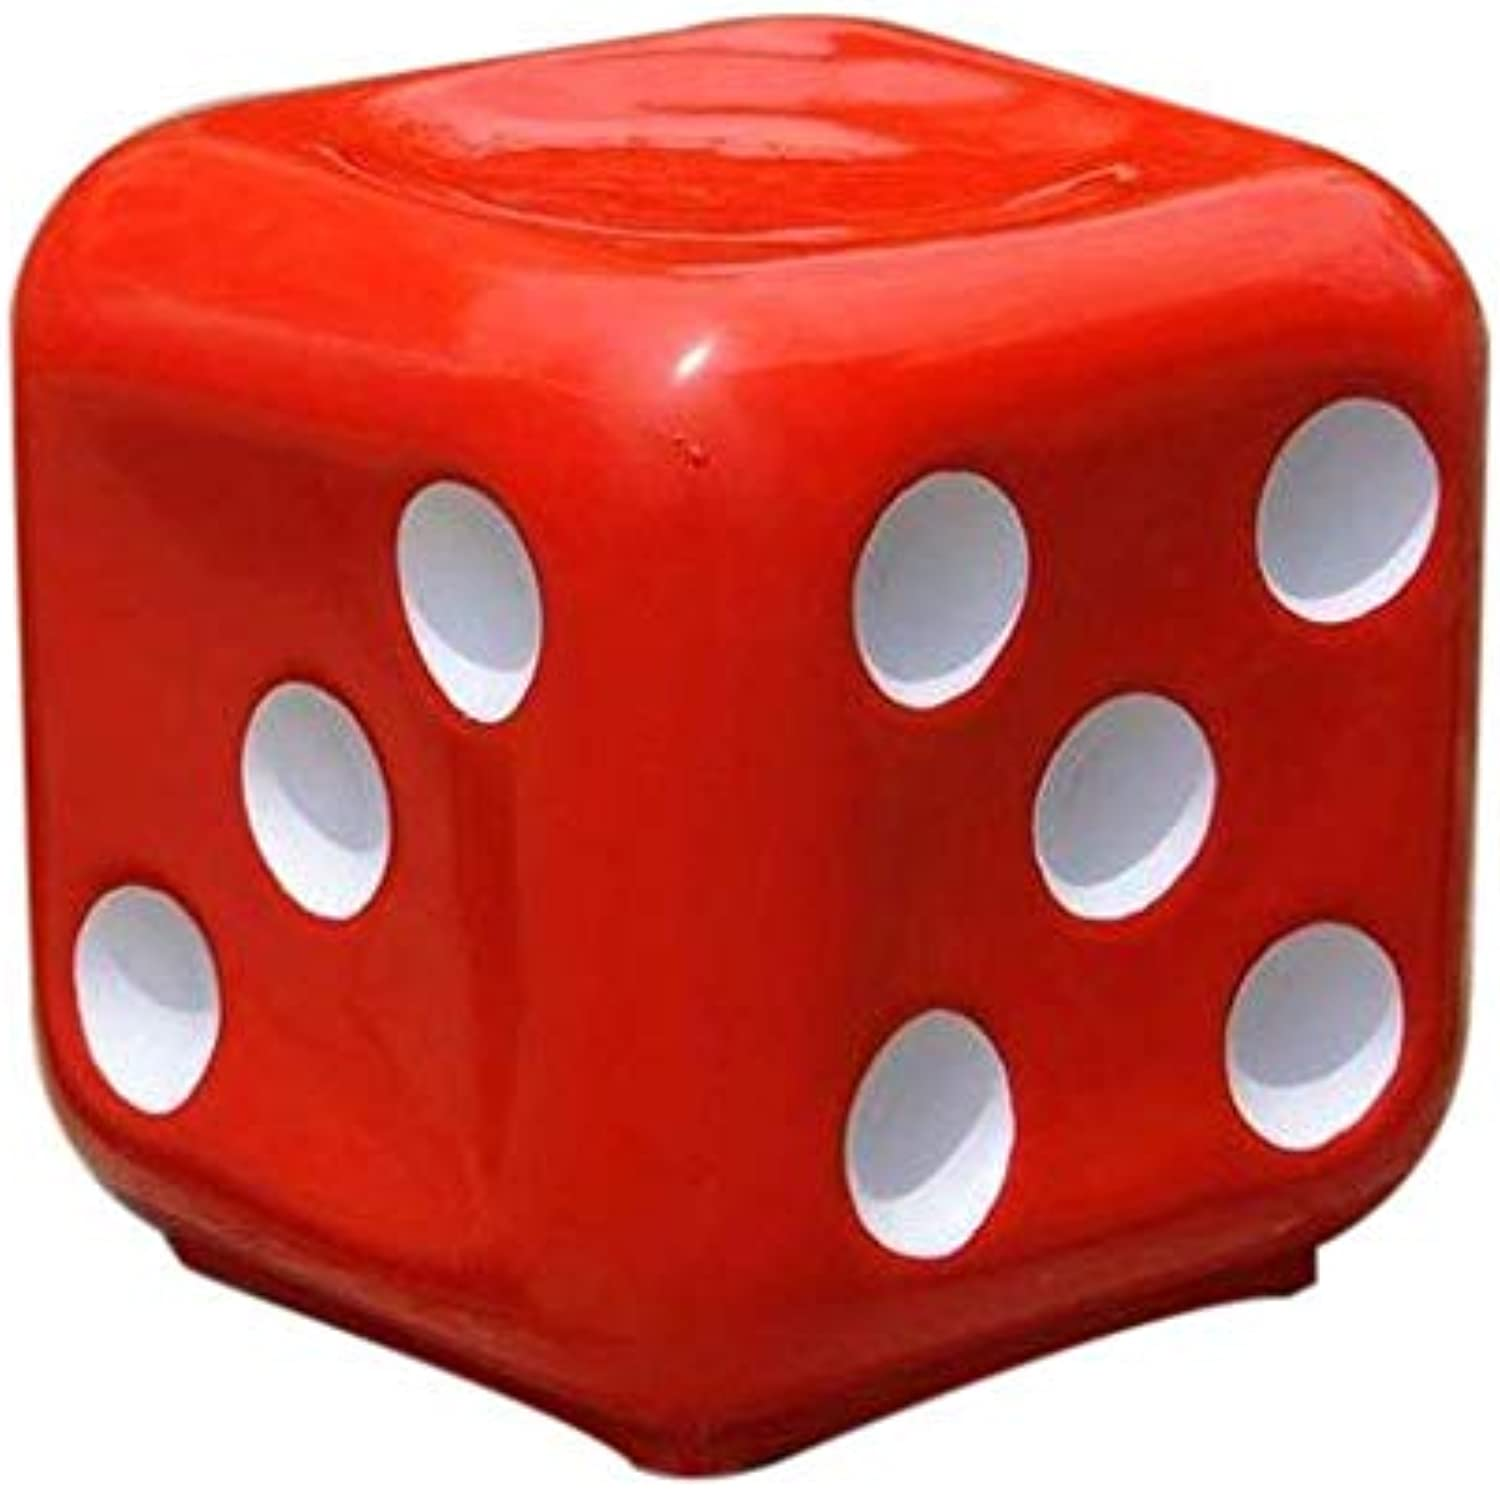 Stool DICE RED Premium Fiber Material Unbreakable Durable Dice Sitting Stool (Fiber) for Living Room Home Office Outdoor Stool with Anti-Skid Rubber  Stool with Sturdy Compact and Stylish.